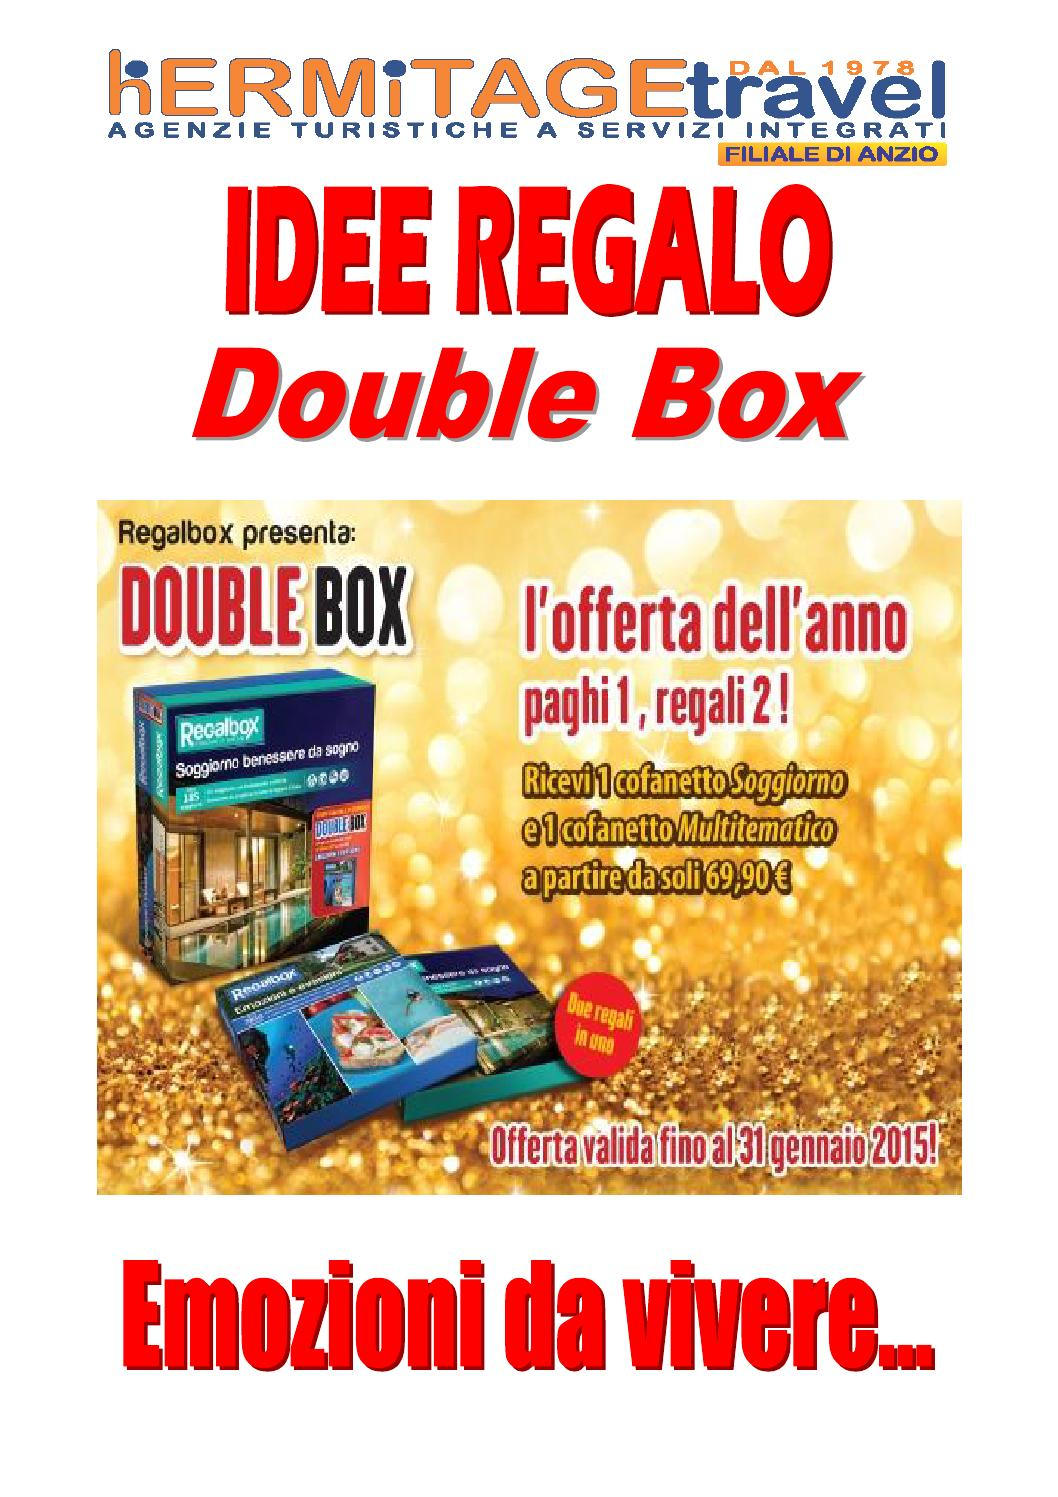 idee regalo regalbox 2015/2016 by italy tour - issuu - Soggiorno Originale Regalbox